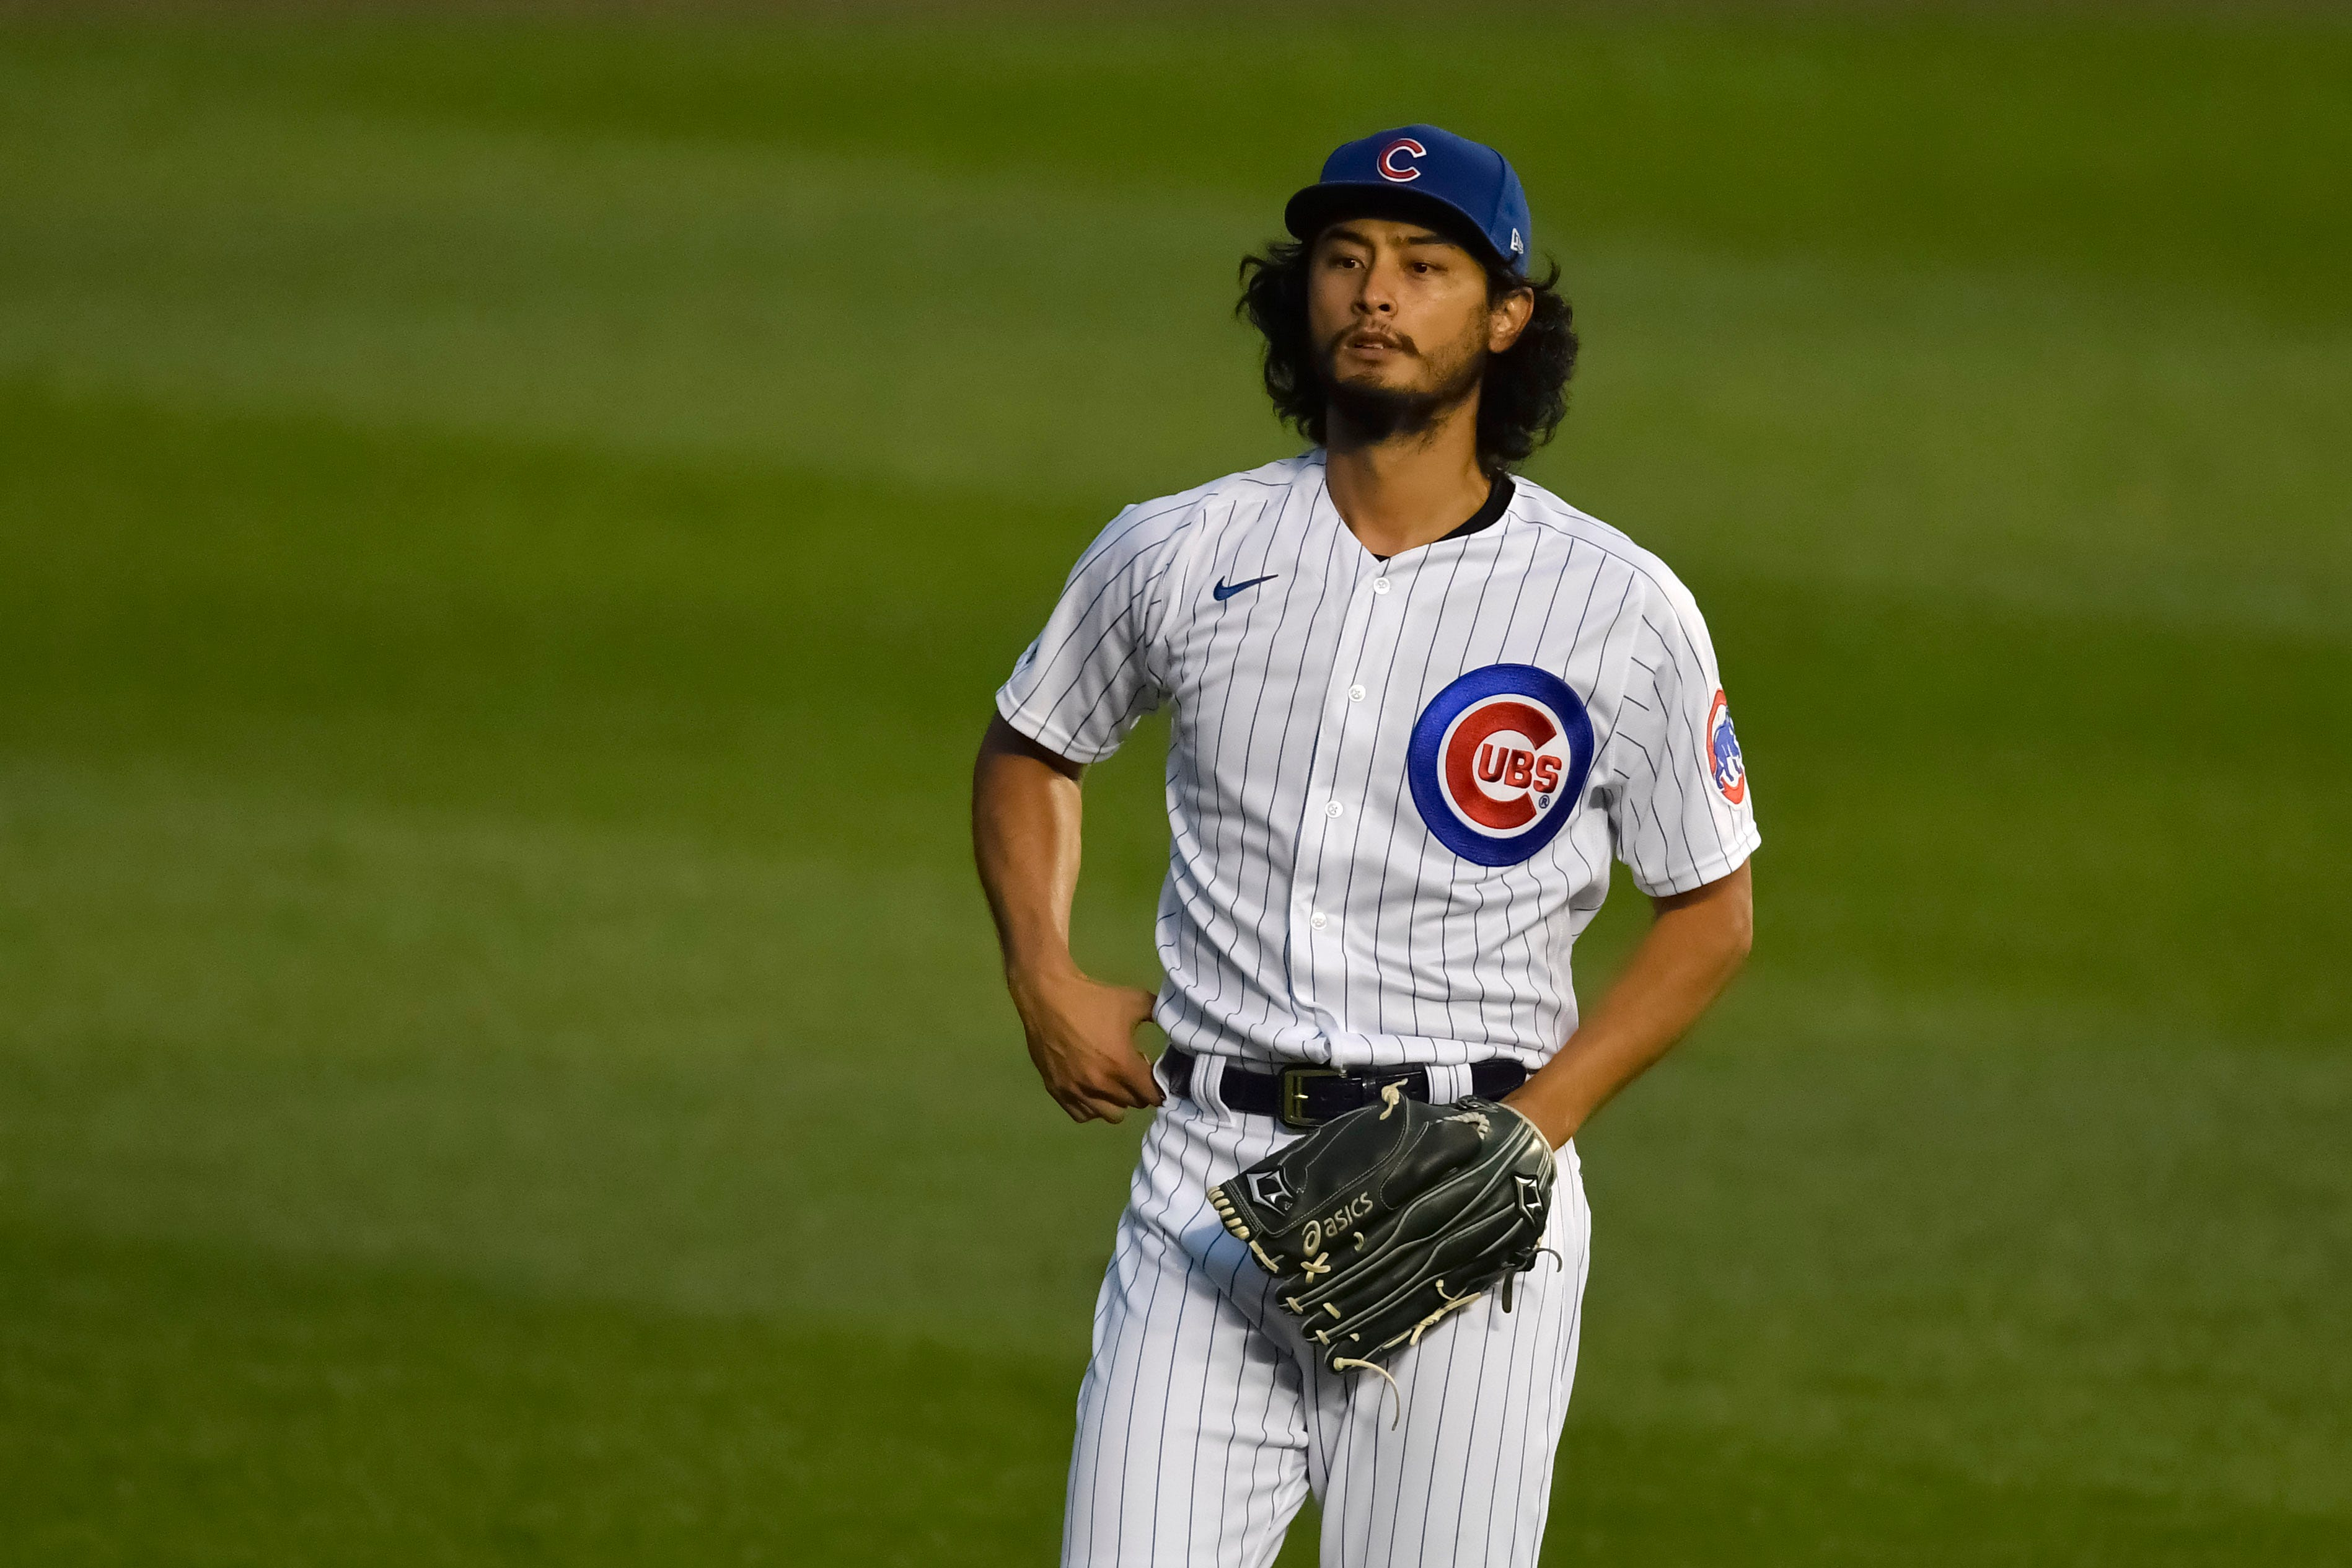 San Diego Padres to acquire Yu Darvish in trade with Chicago Cubs